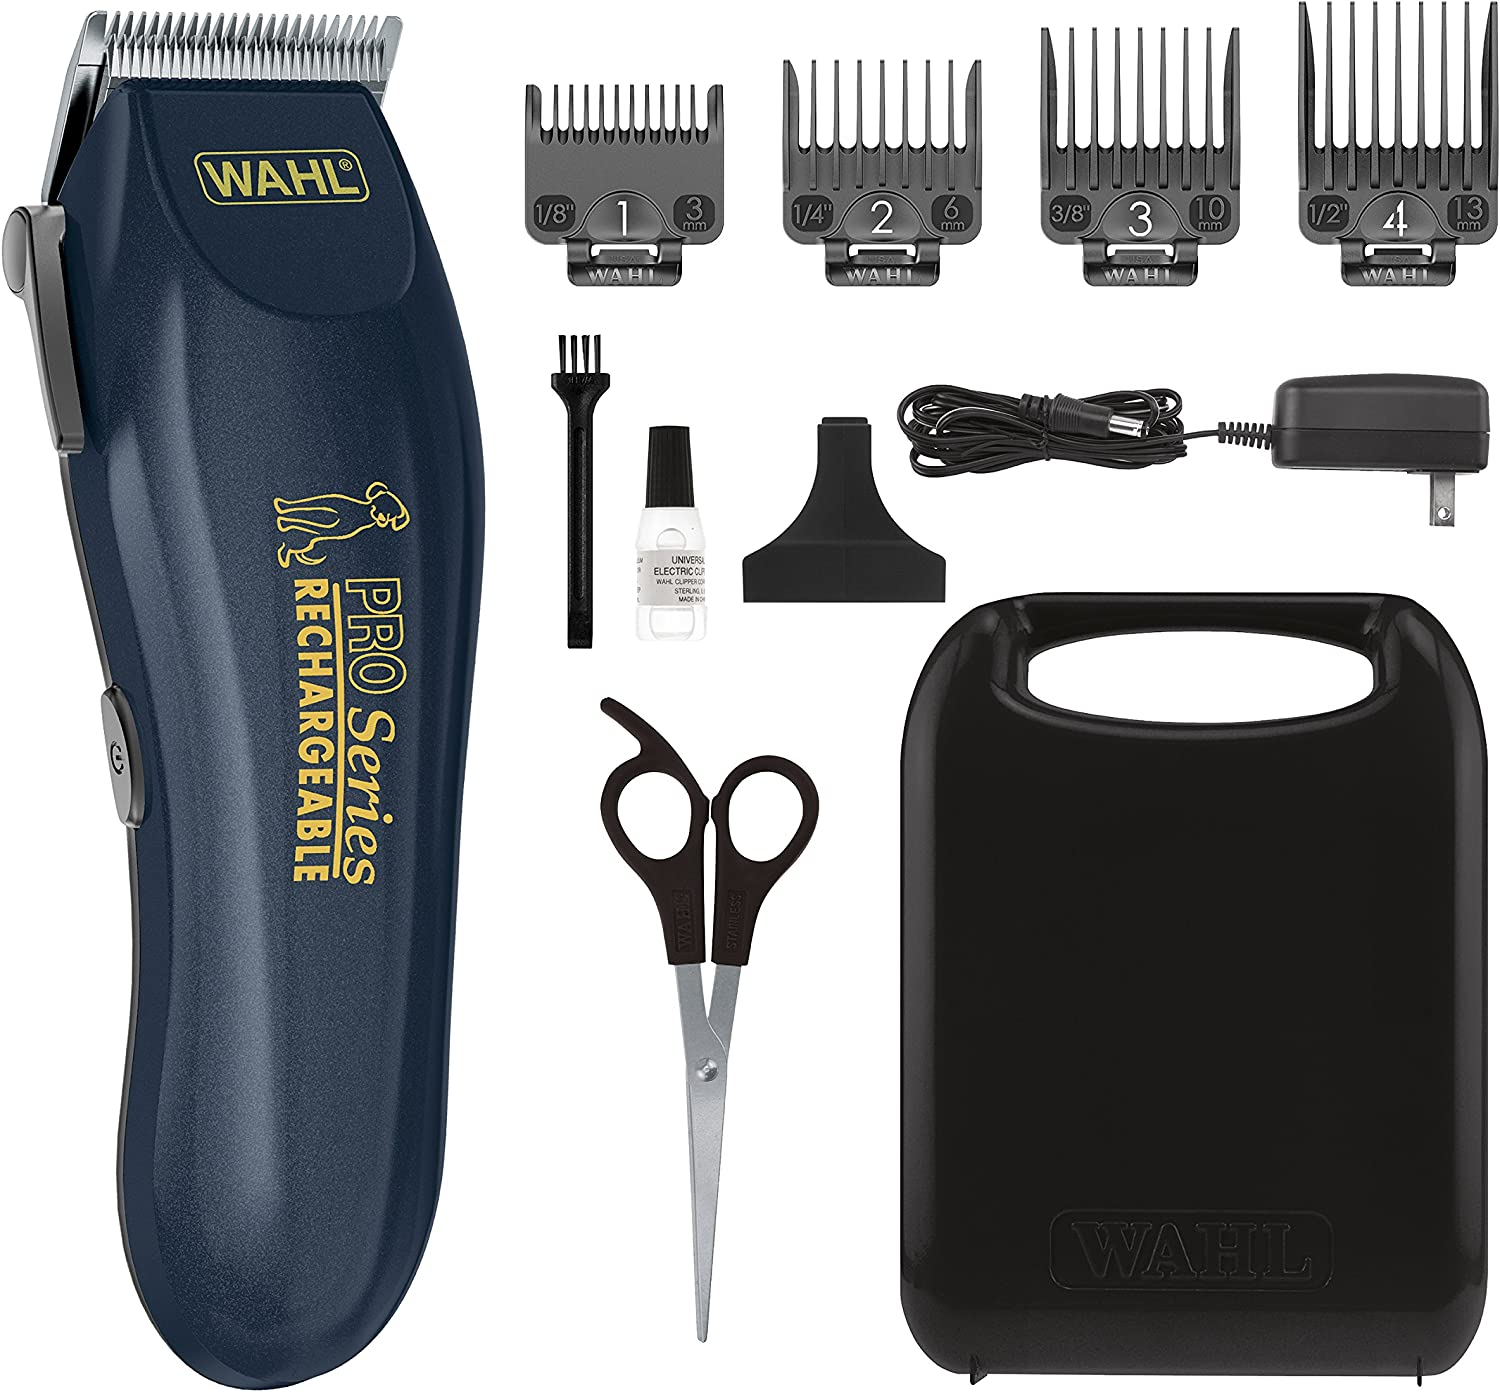 WAHL Clipper Lithium Ion Deluxe Pro Series Rechargeable Pet Grooming Kit - Low Noise Cordless Electric Shaver for Dog & Cat Trimming with Heavy Duty Motor – Model 9591-2100